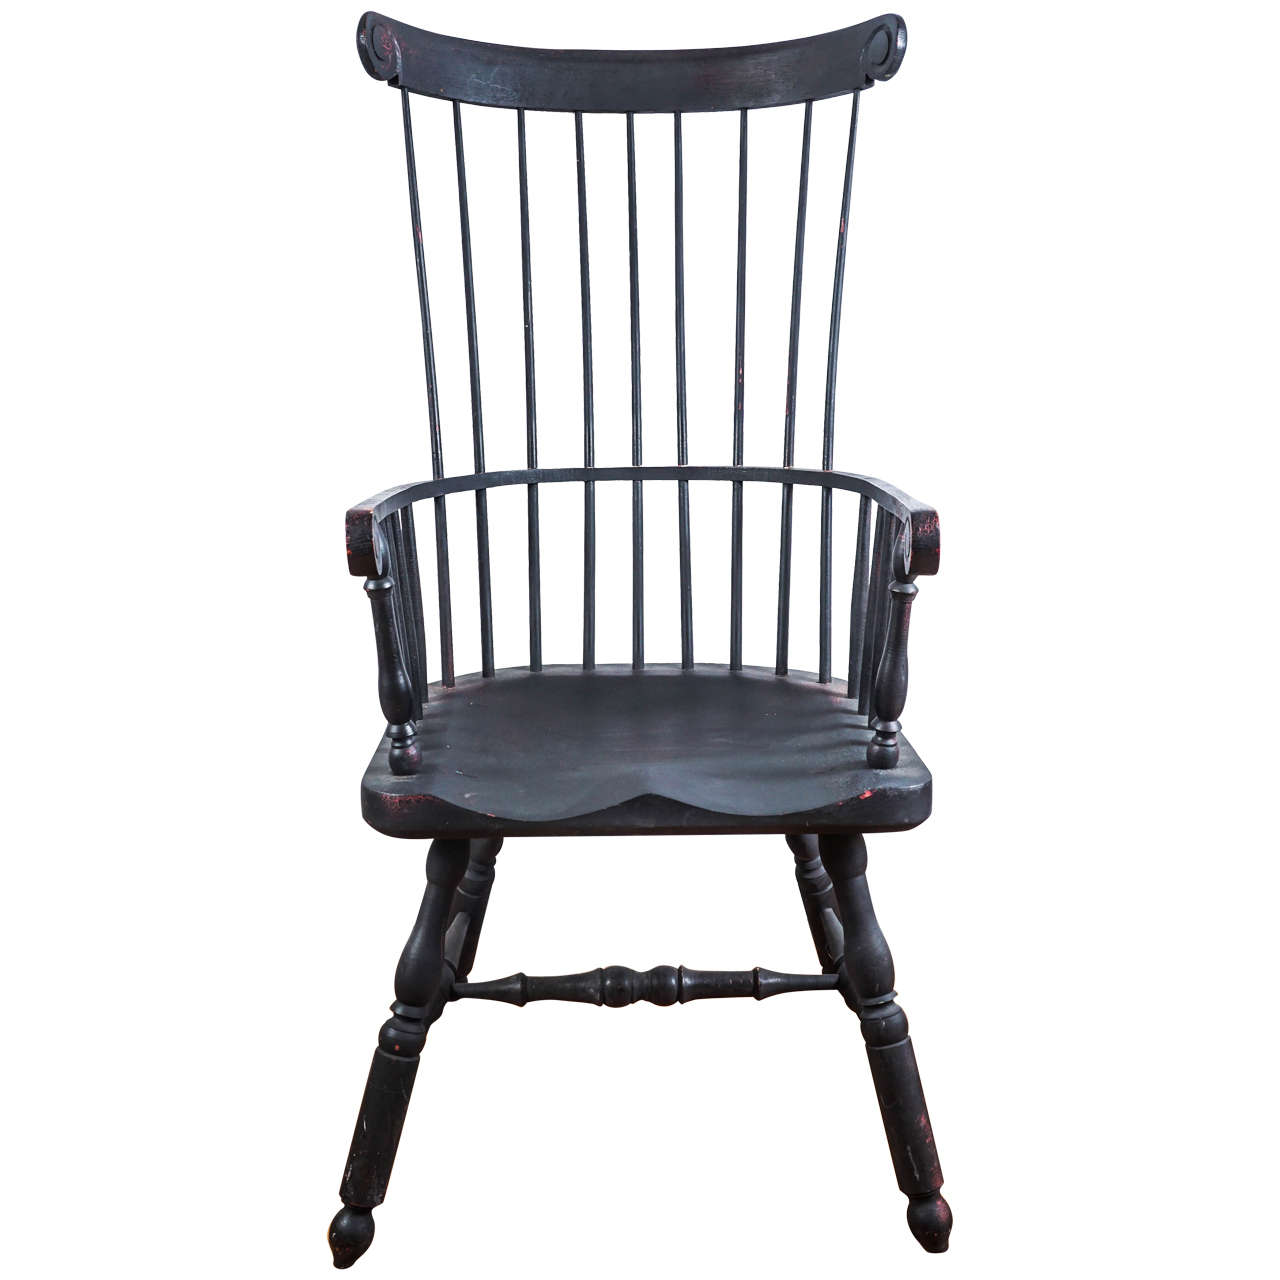 High-Back Windsor Chair 1 - High-Back Windsor Chair For Sale At 1stdibs